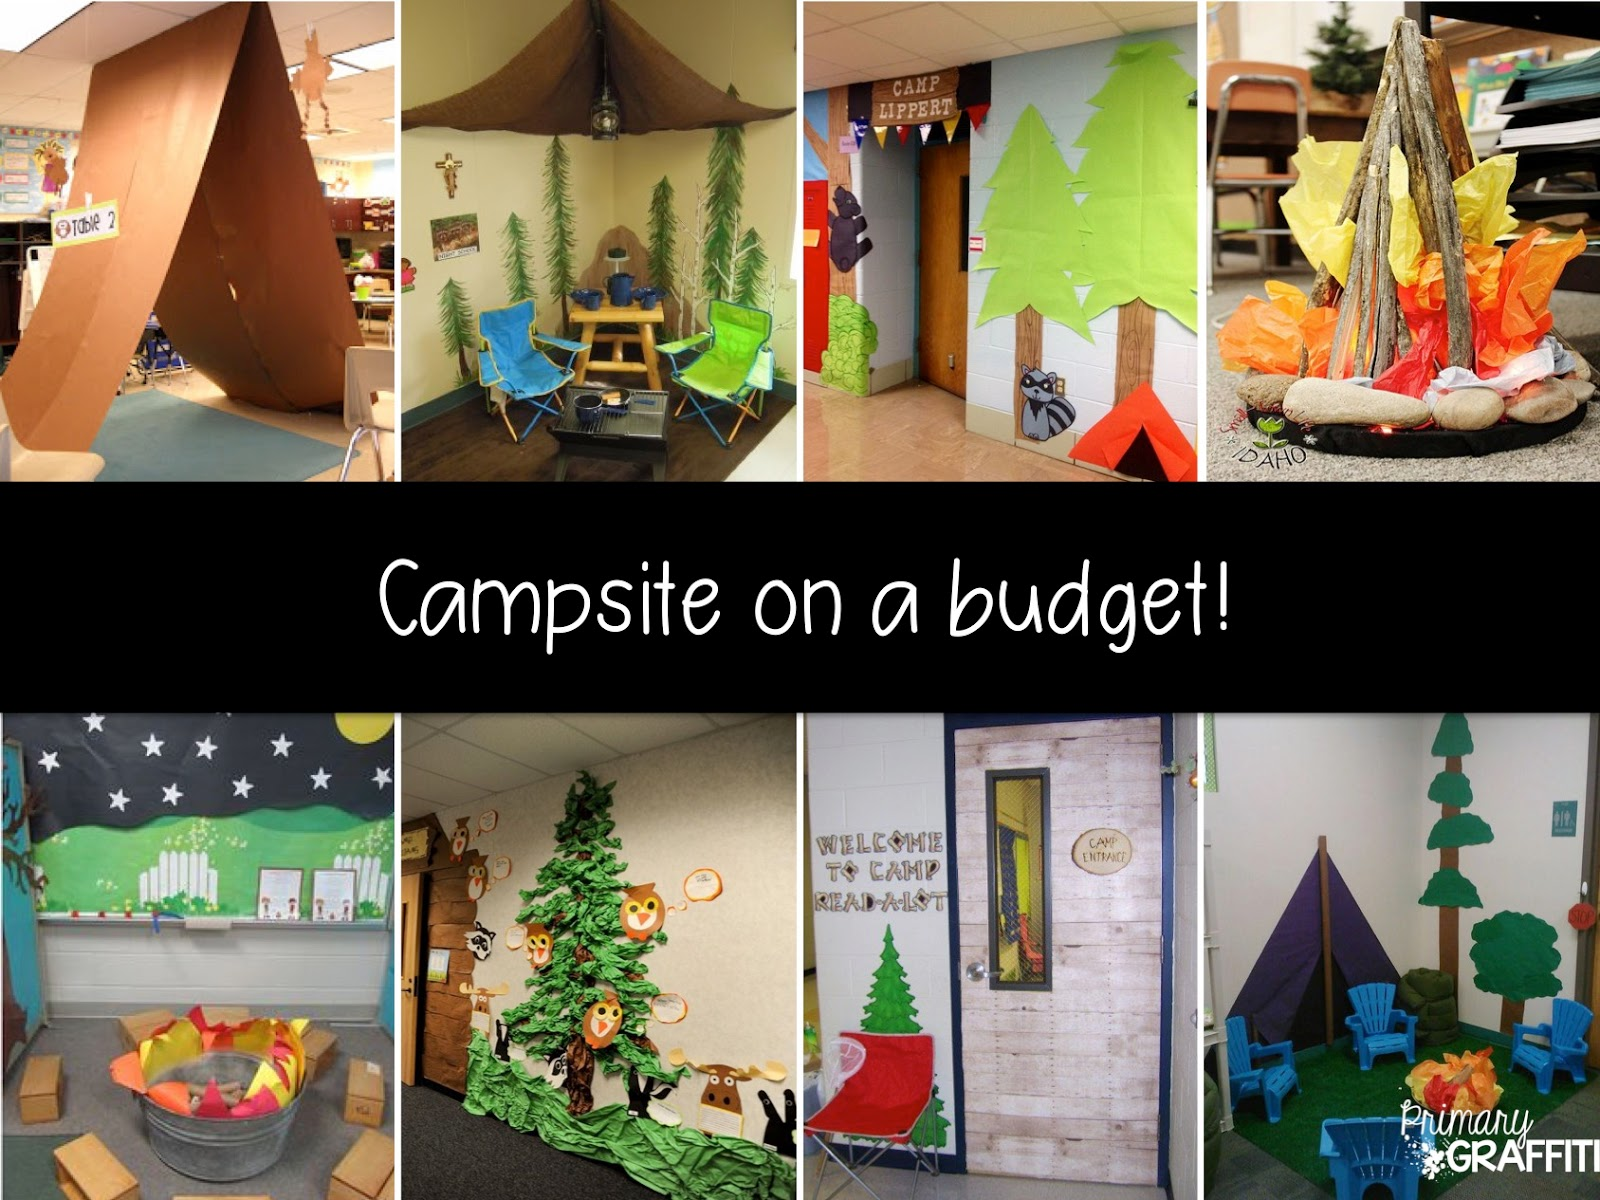 Classroom Decorating Ideas Camping Theme ~ Primary graffiti camping with books